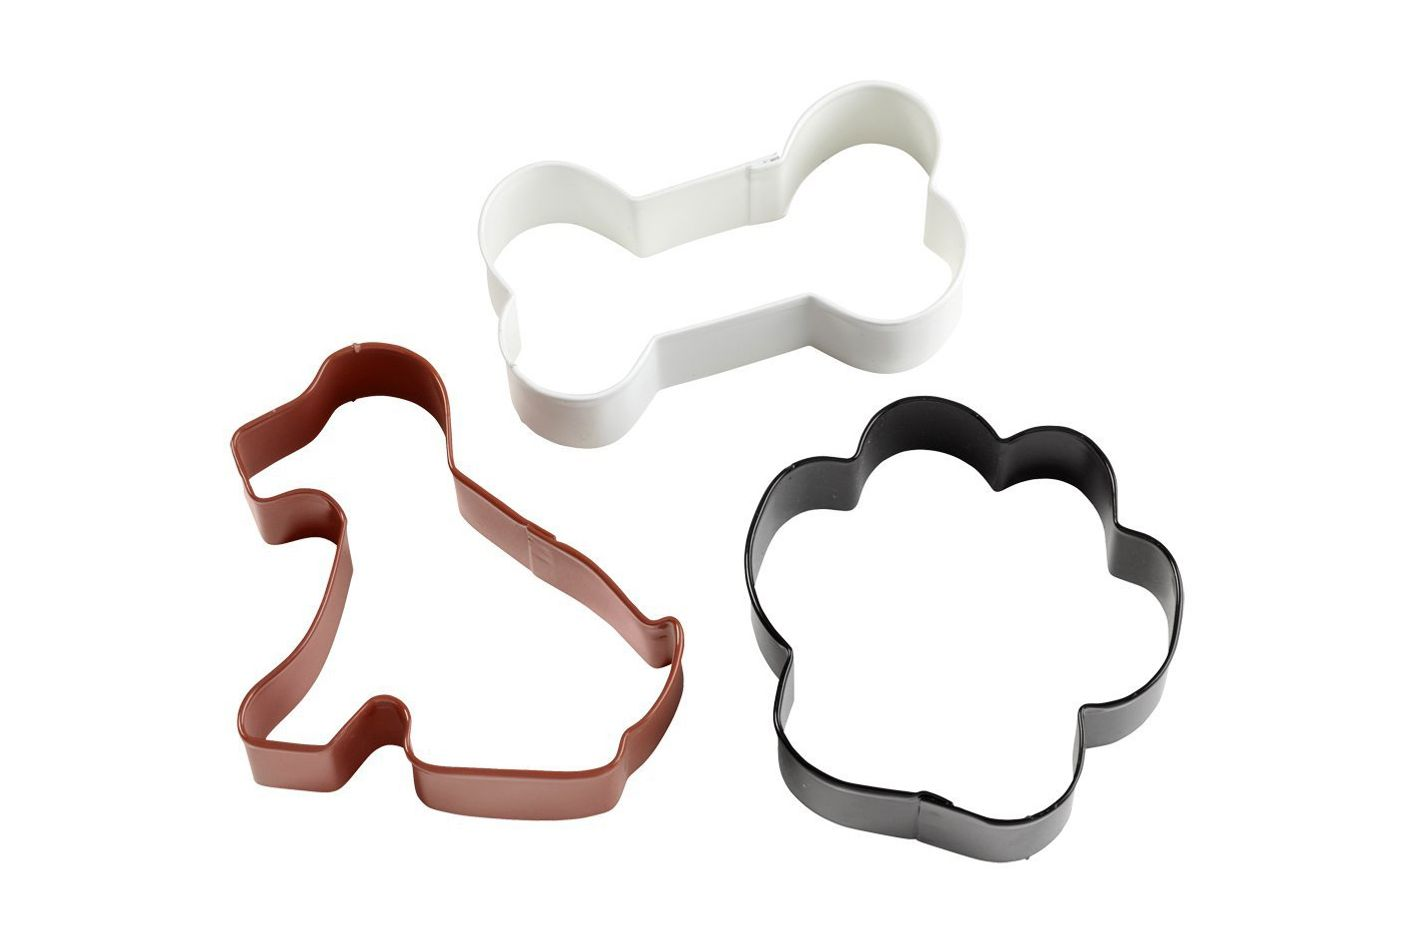 Wilton 2308-0246 Dog, Bone and Paw Print Cookie Cutter, Set of 3